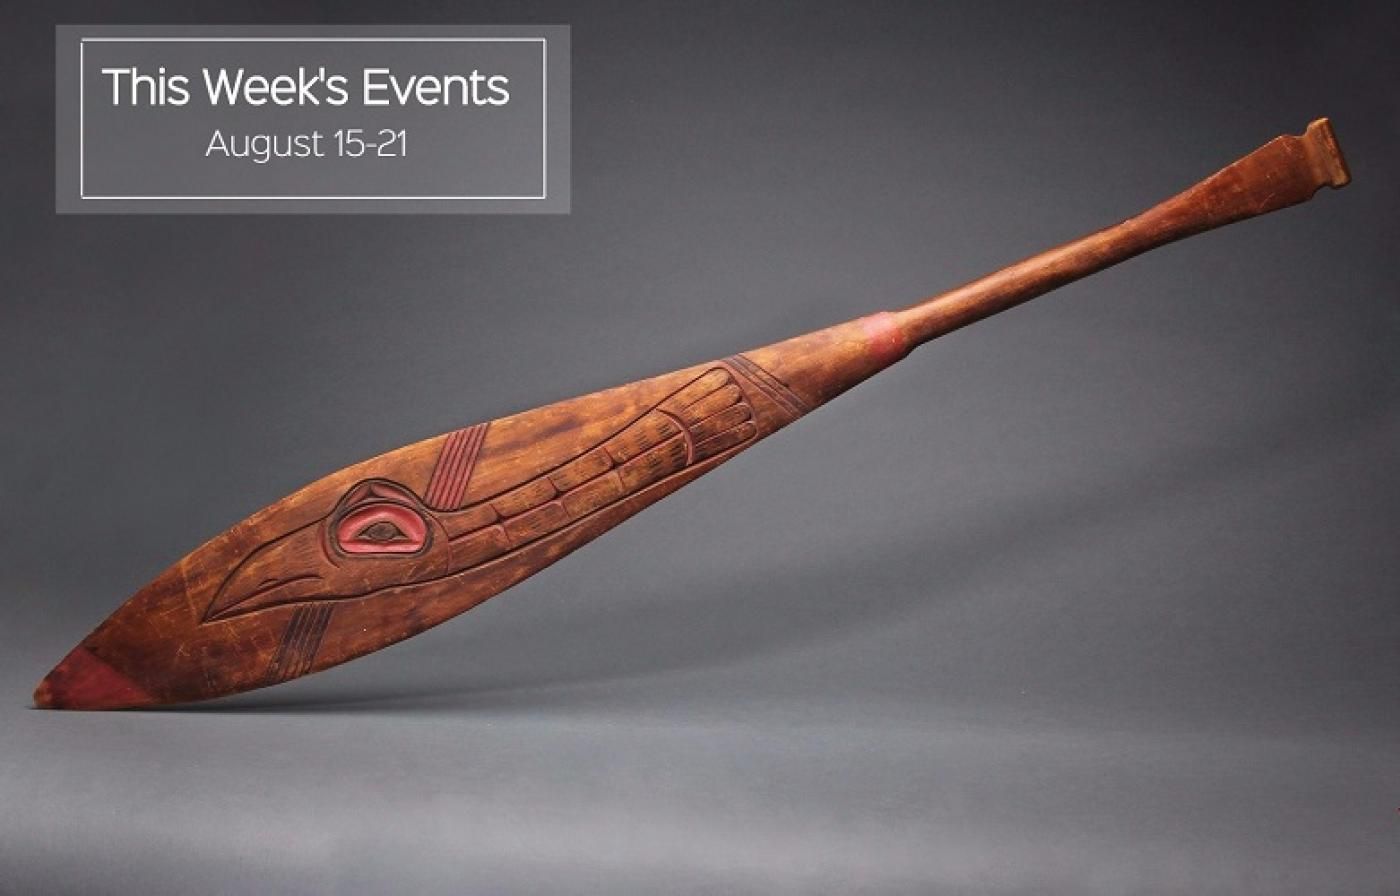 This Week's Events: Architects Louis Kahn and Zaha Hadid, Gilded Age Drawings, Antique American Indian Art Show, + More